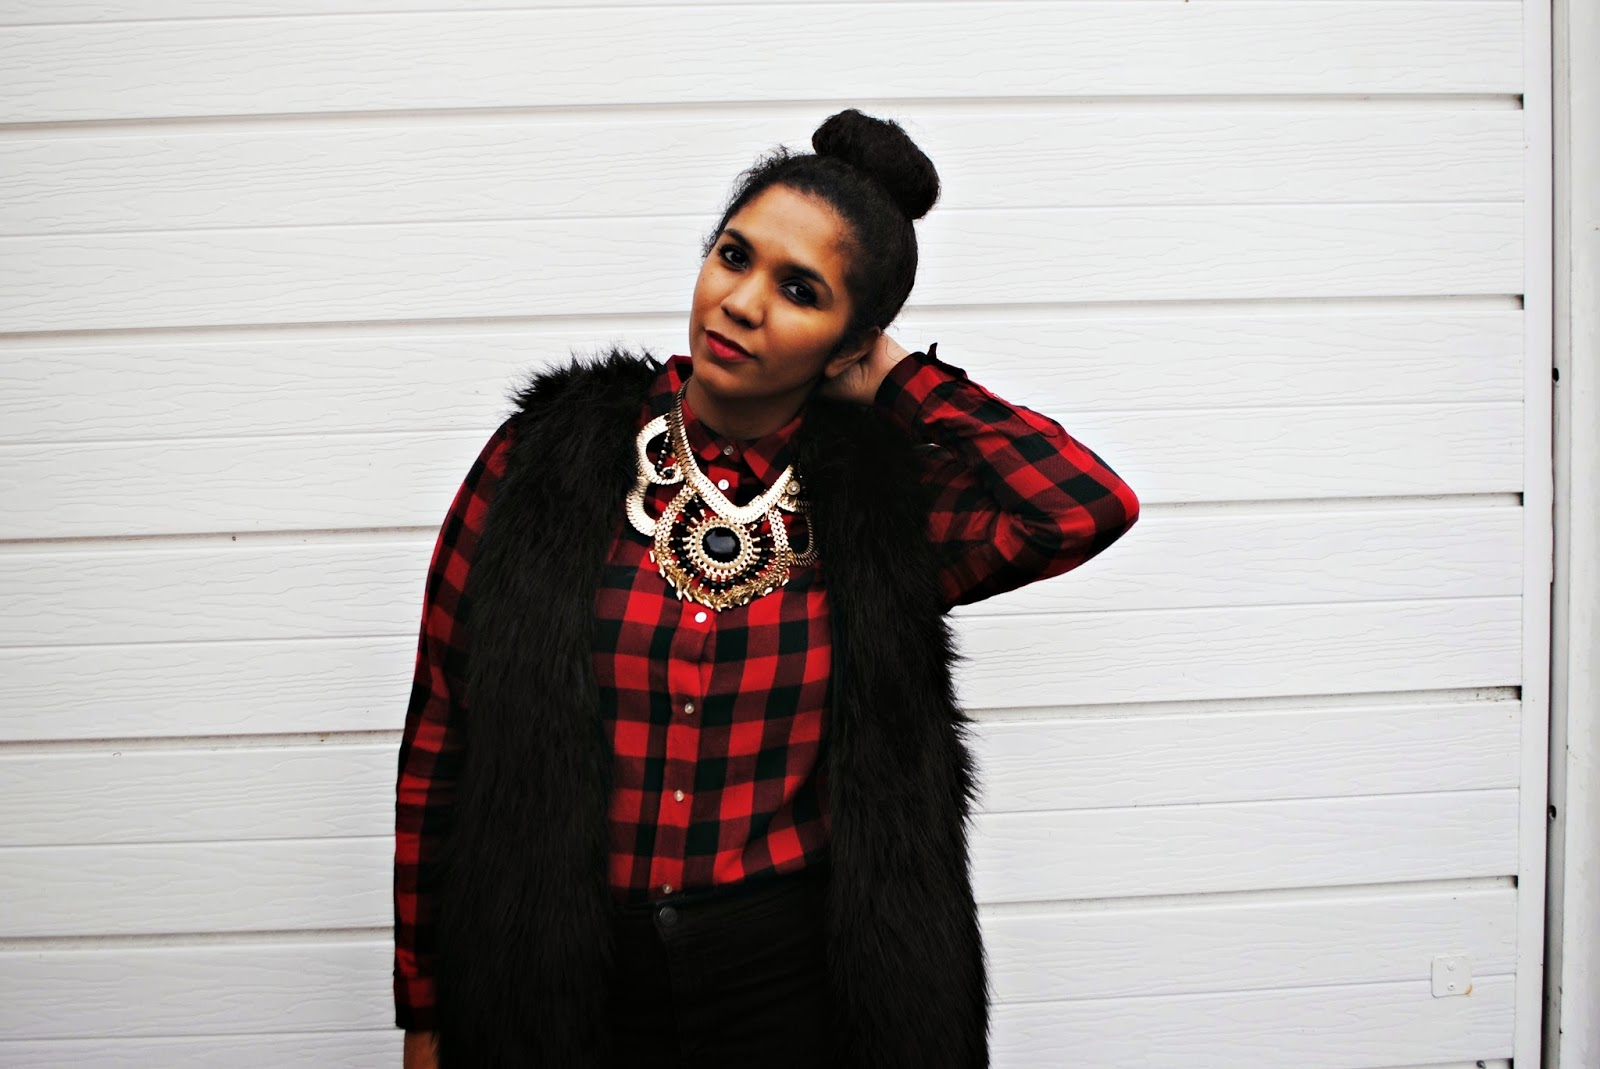 Lumberjack shirt layered with a fur gilet